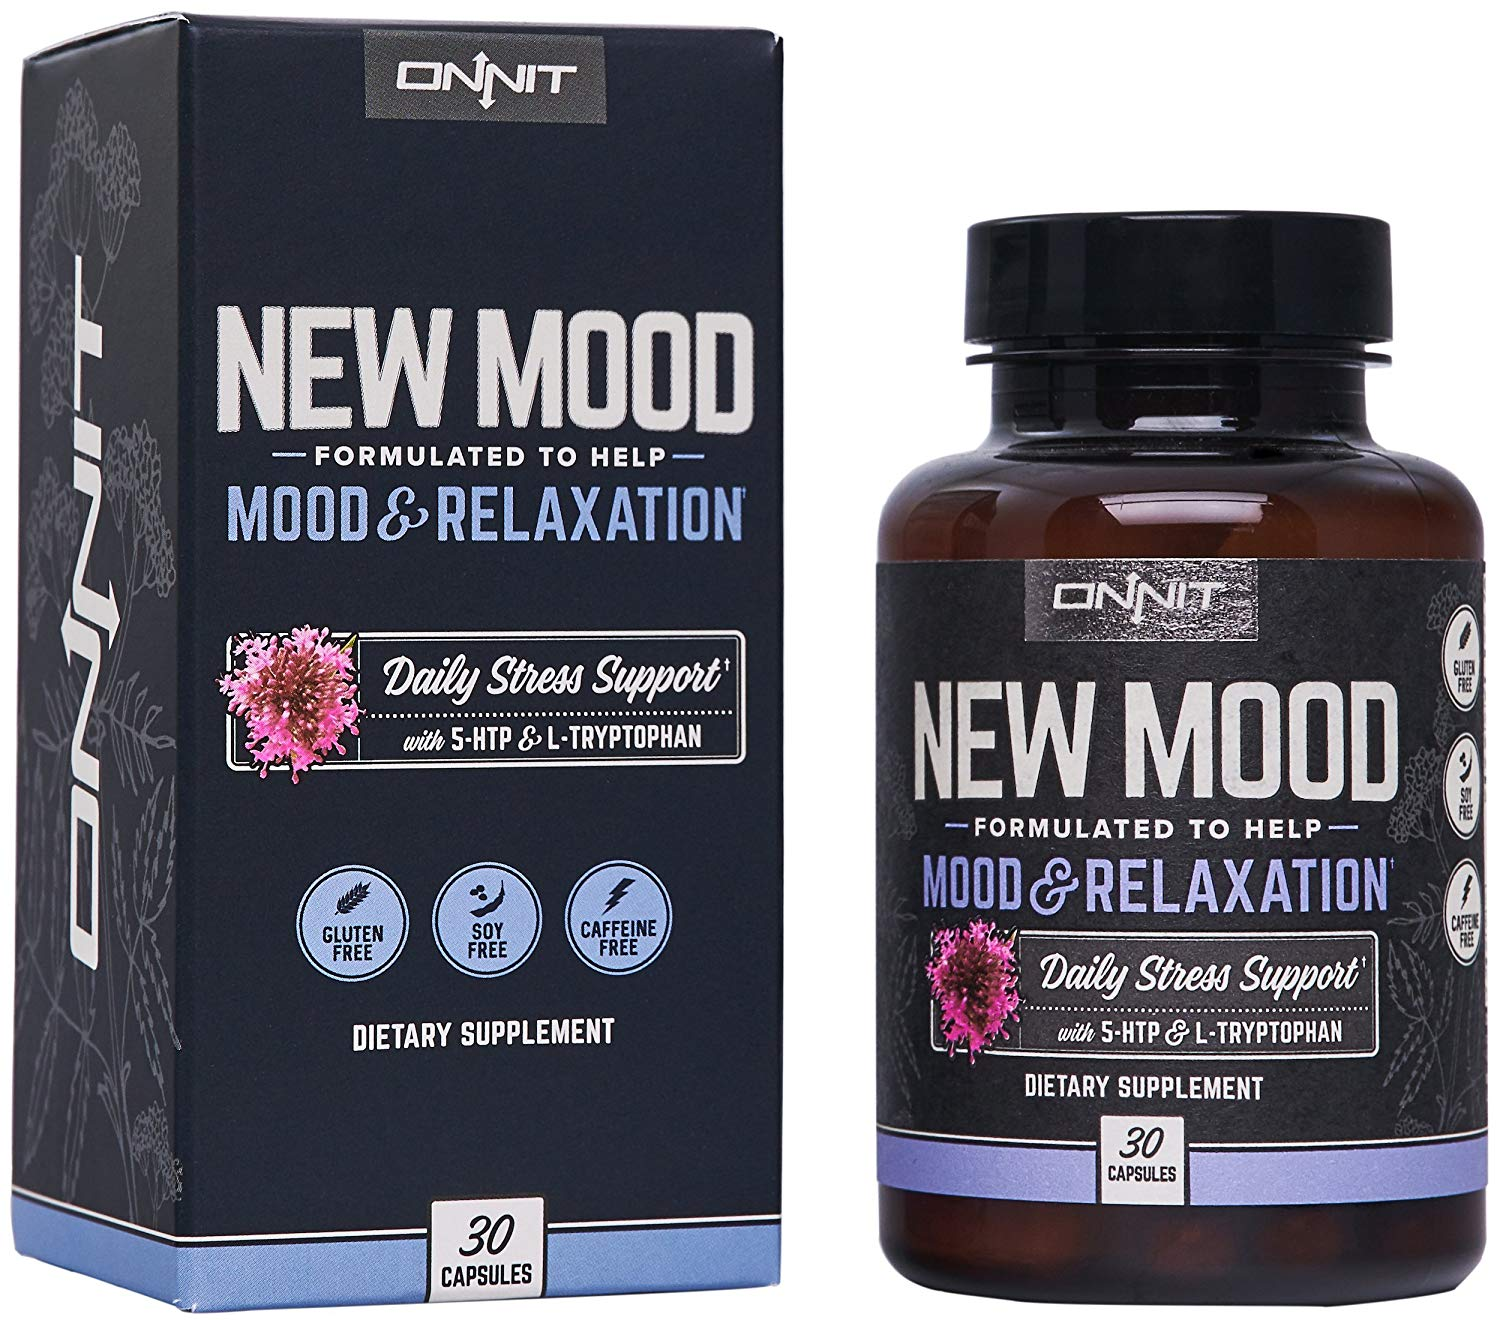 New Mood - Formulated To Help Mood & Relaxation